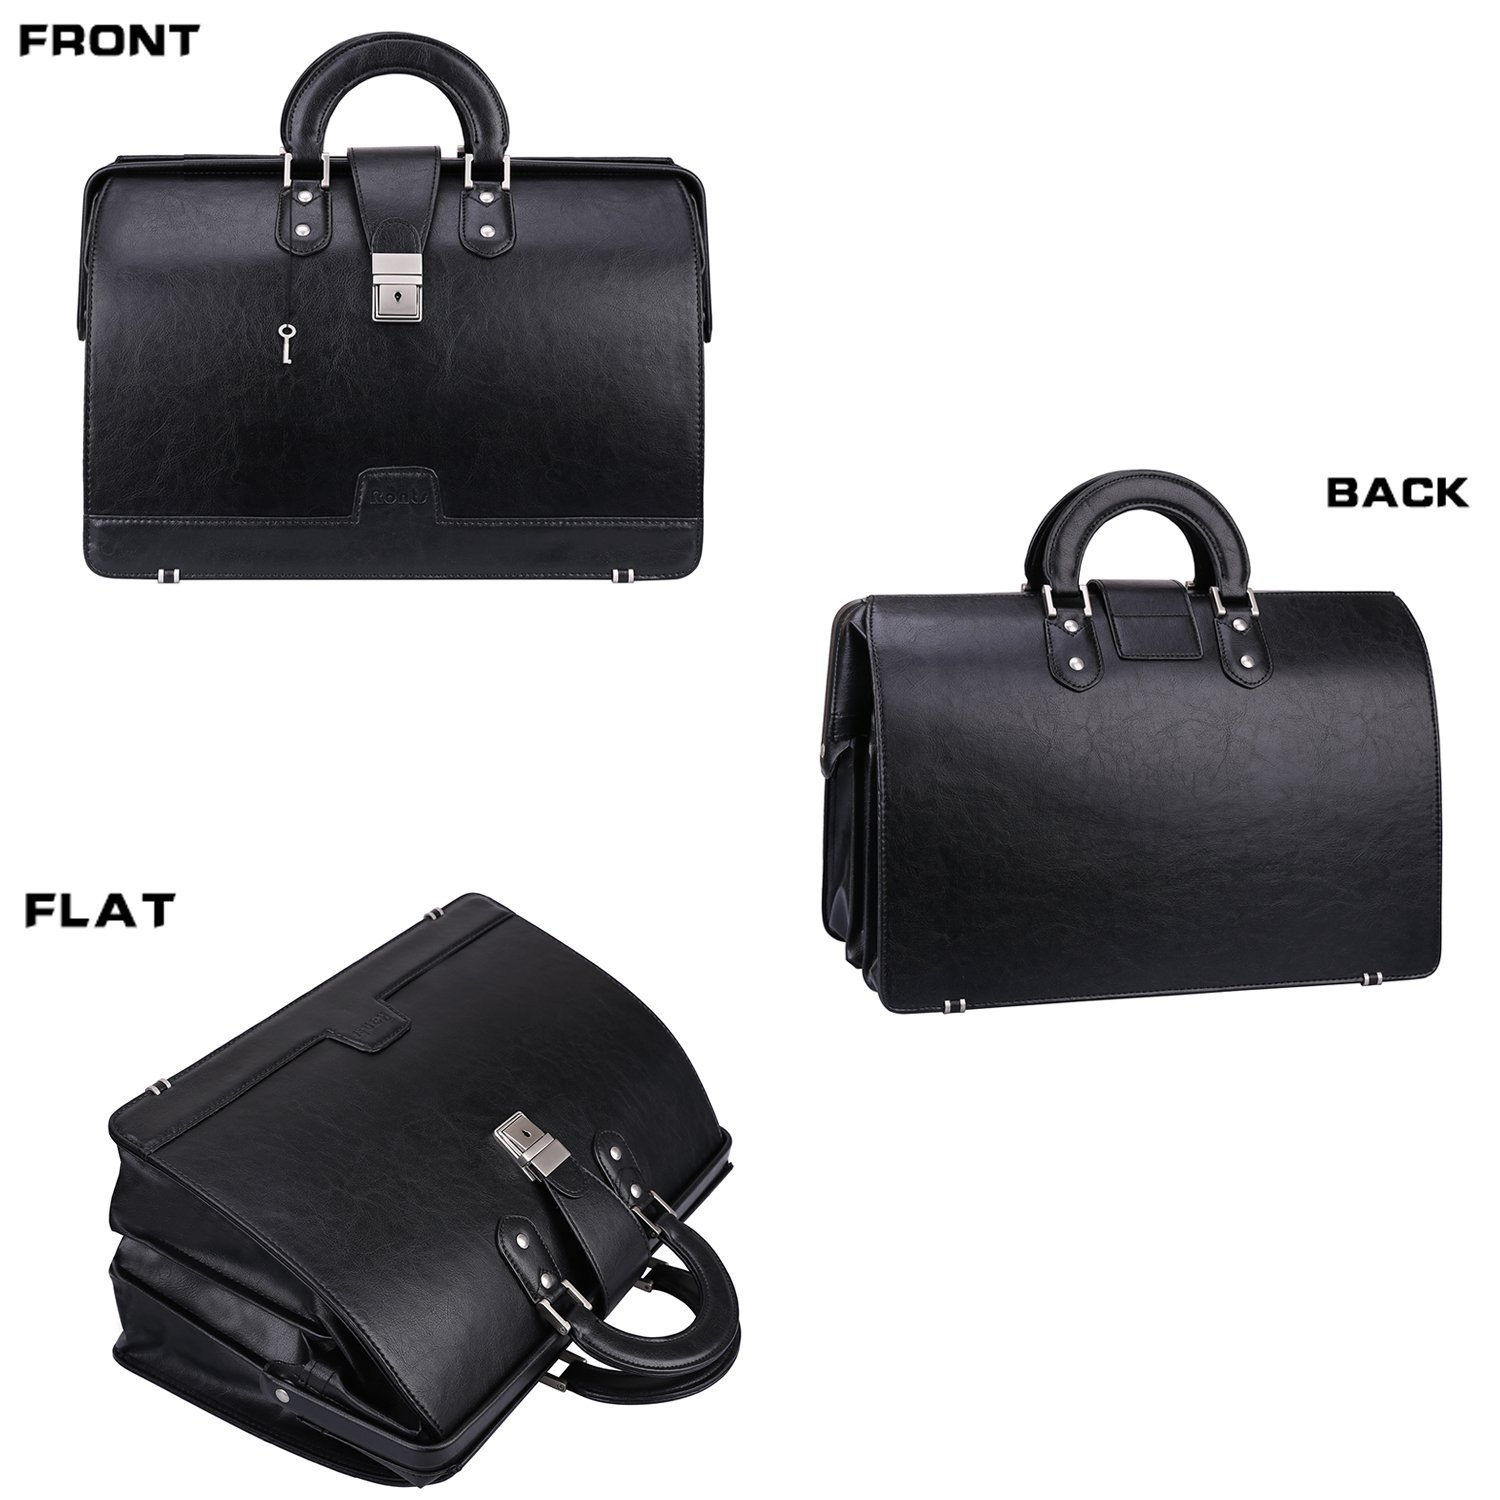 Ronts Mens PU Leather Briefcase Lawyer Attache Case with Lock 15.6 Inch Laptop Business Bag, Black by Ronts (Image #3)